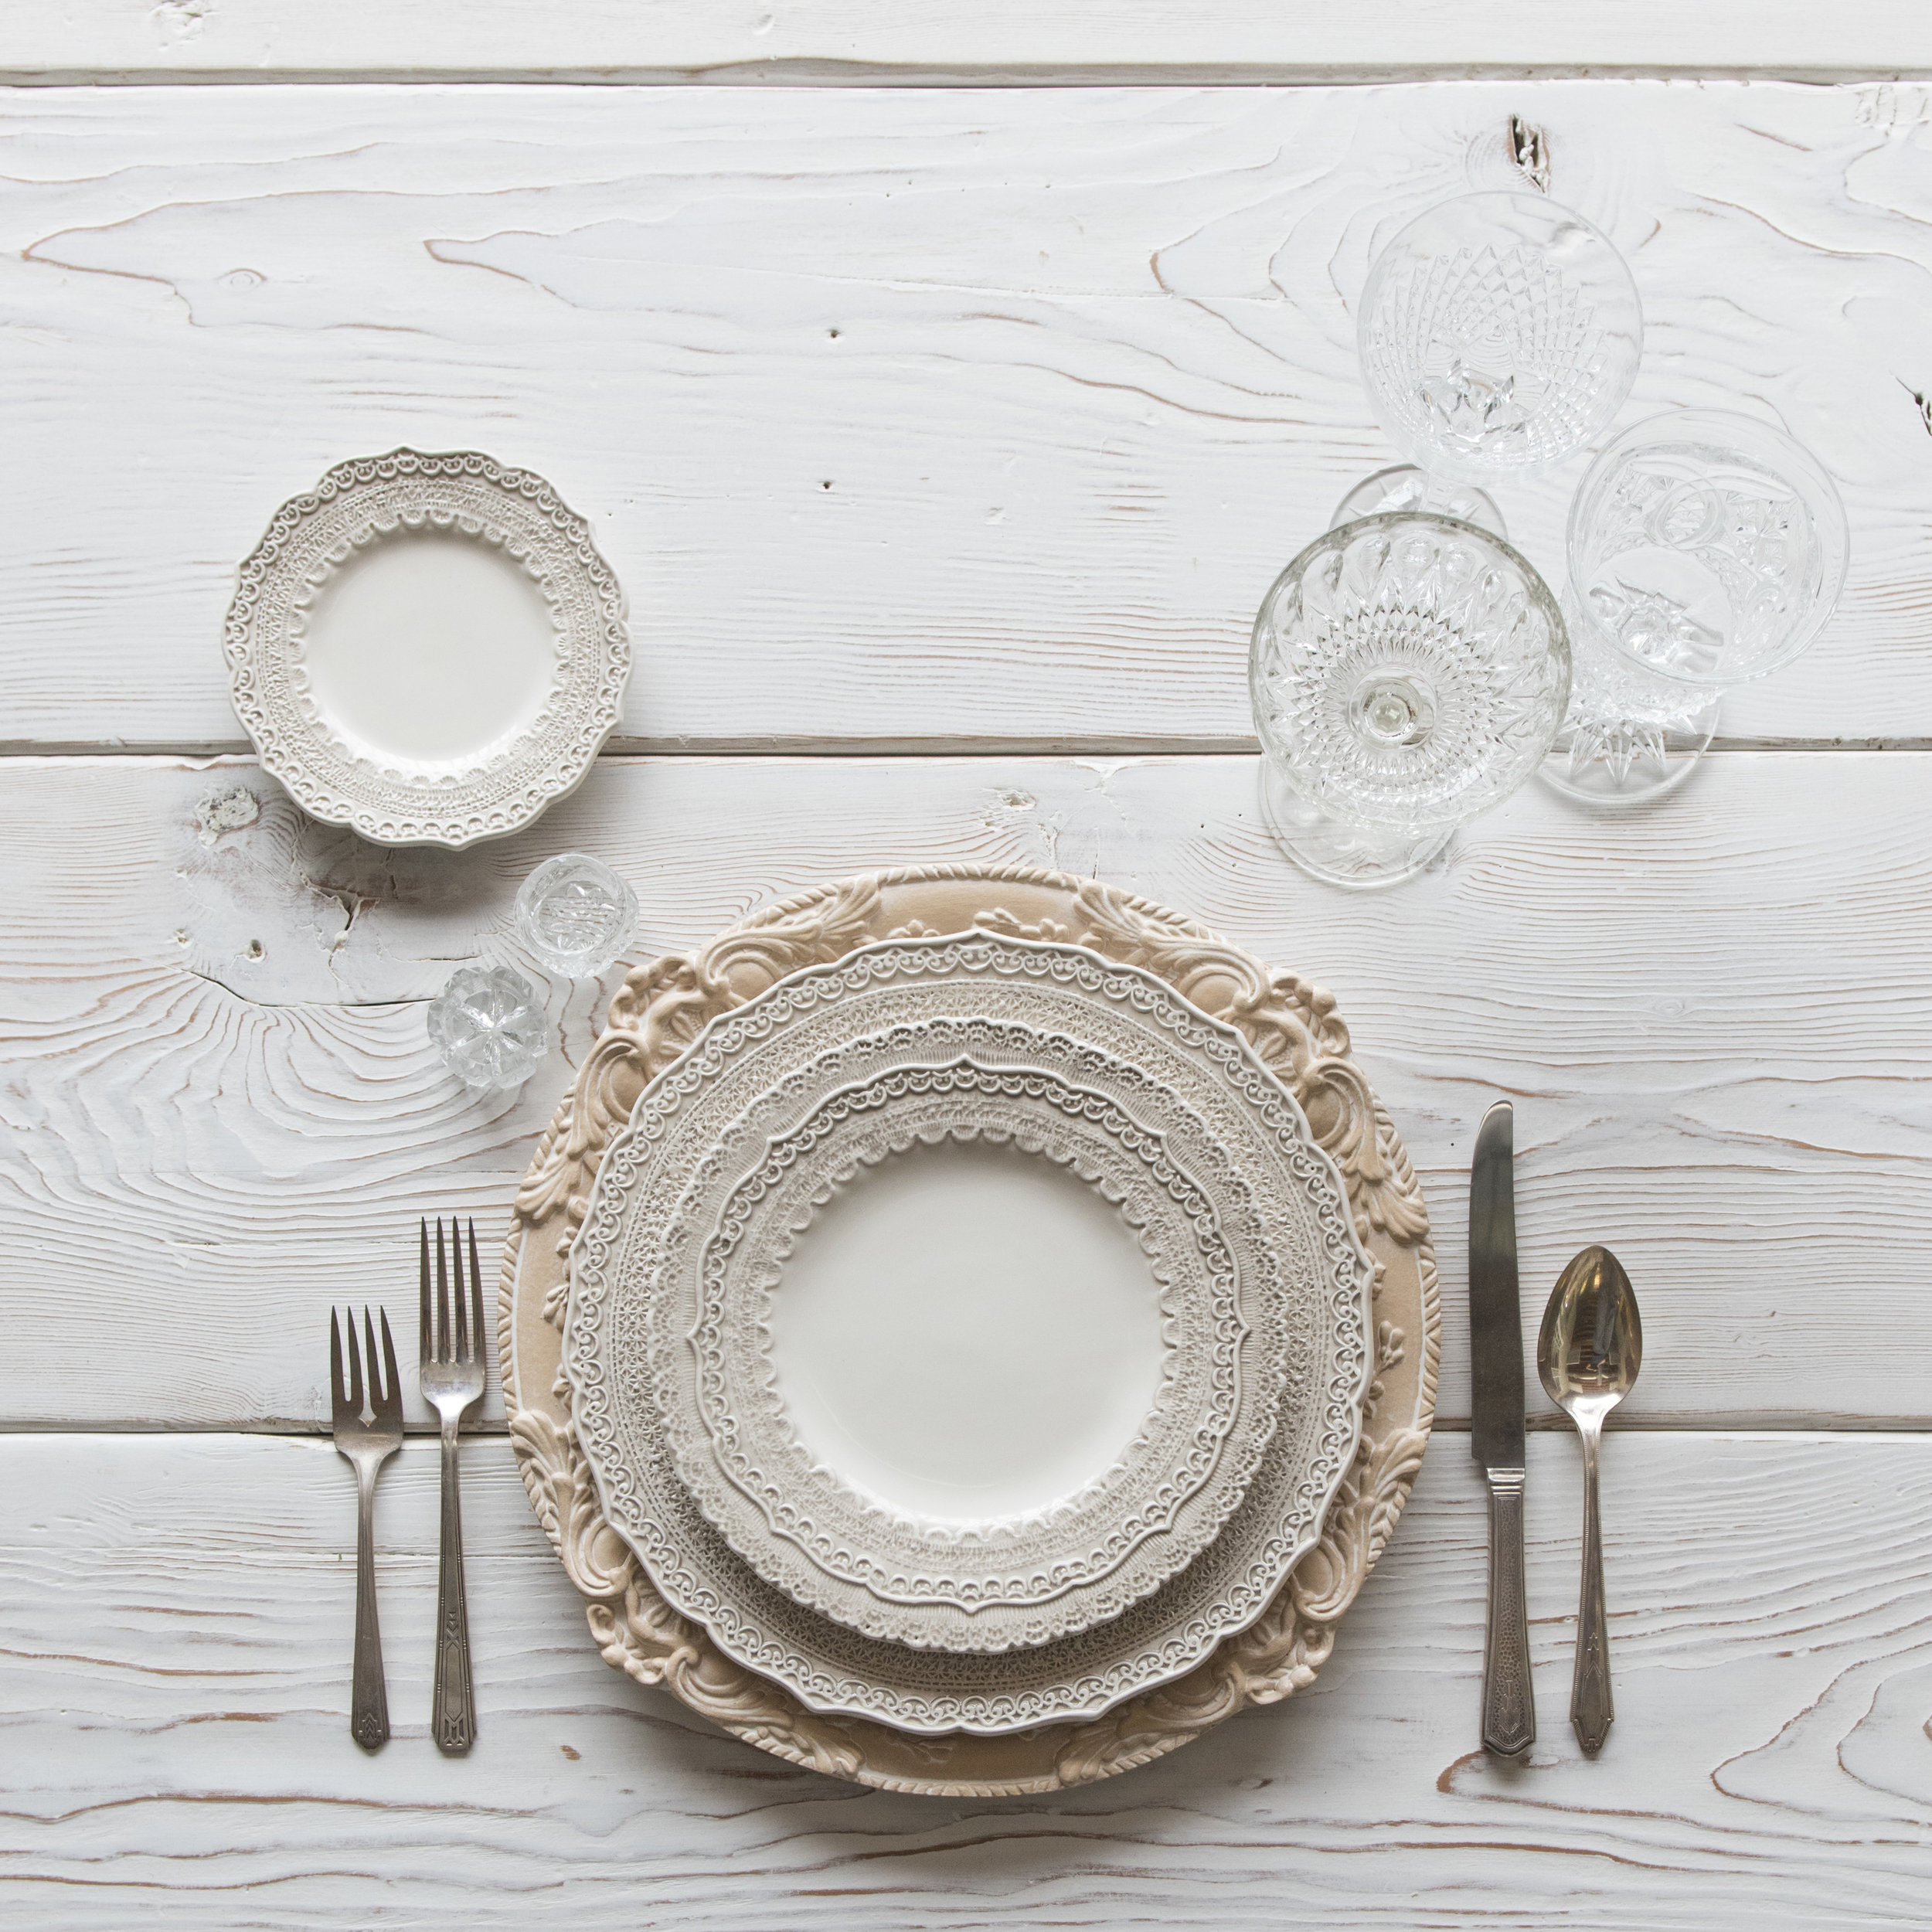 RENT: Verona Chargers in Terracotta + Lace Dinnerware in White + Deco Flatware + Vintage Cut Crystal Goblets + Early American Pressed Glass Goblets + Antique Crystal Salt Cellars  SHOP: Verona Chargers in Terracotta